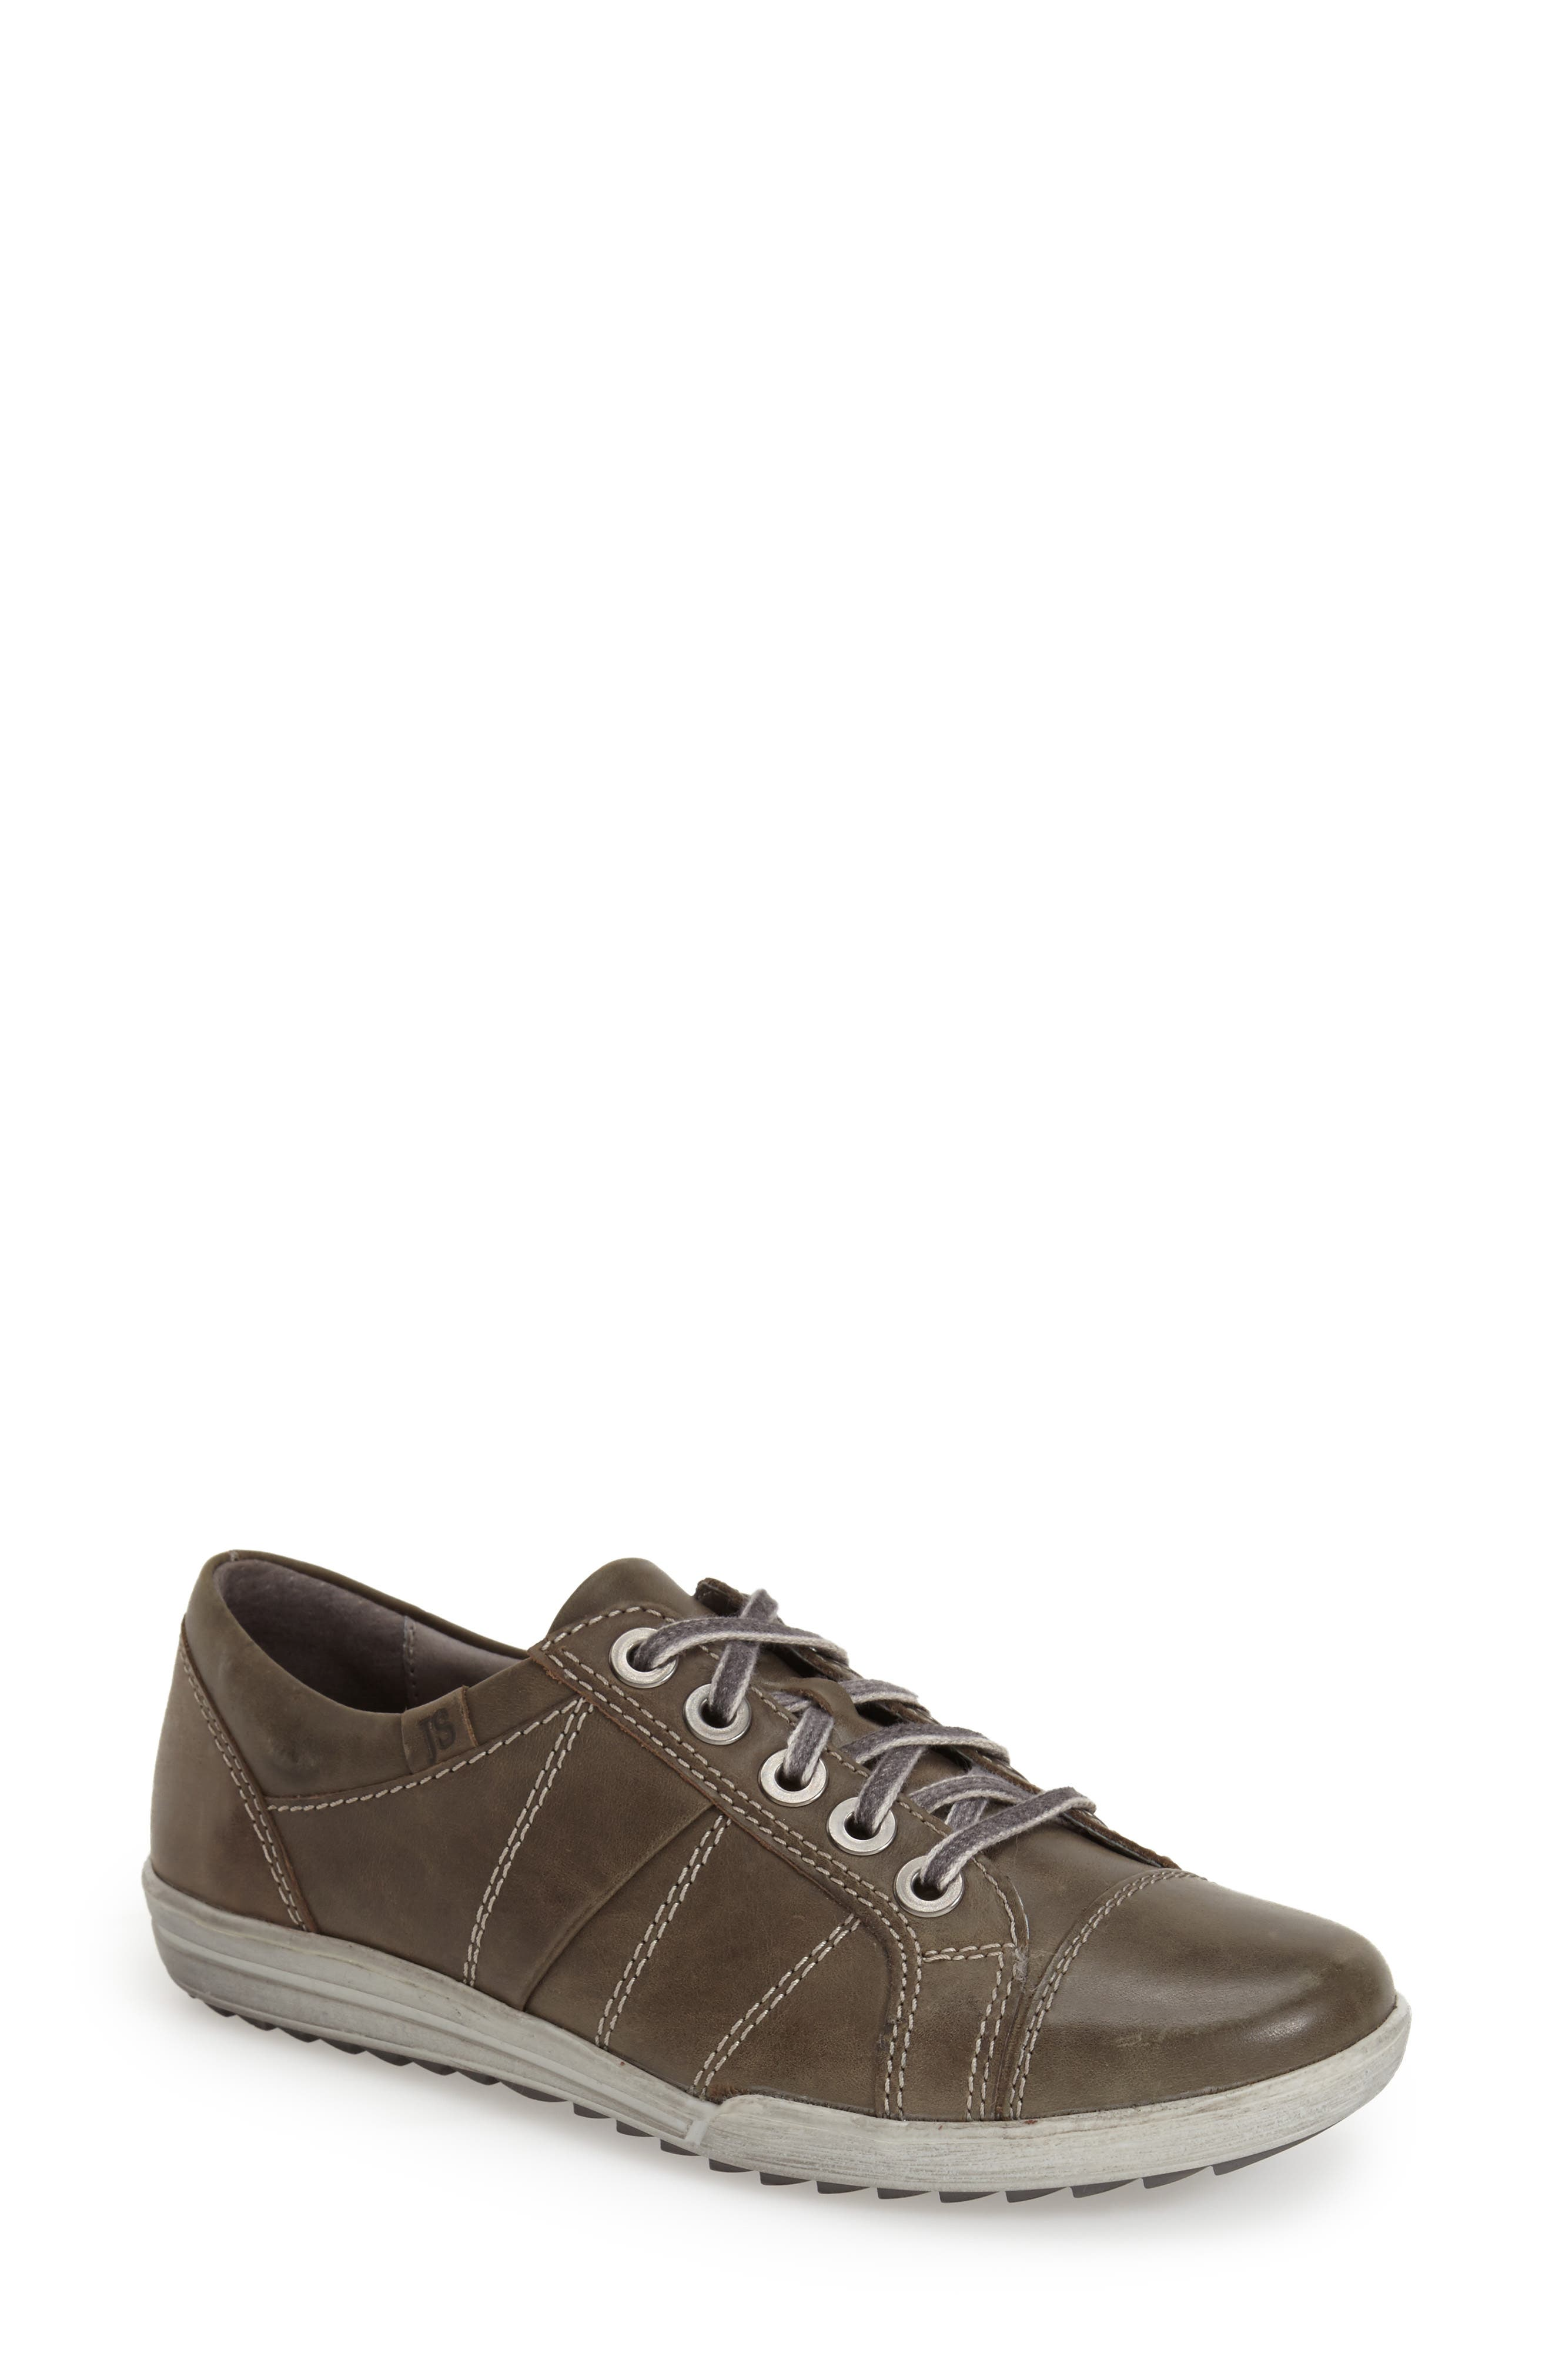 'Dany 05' Leather Sneaker,                             Alternate thumbnail 22, color,